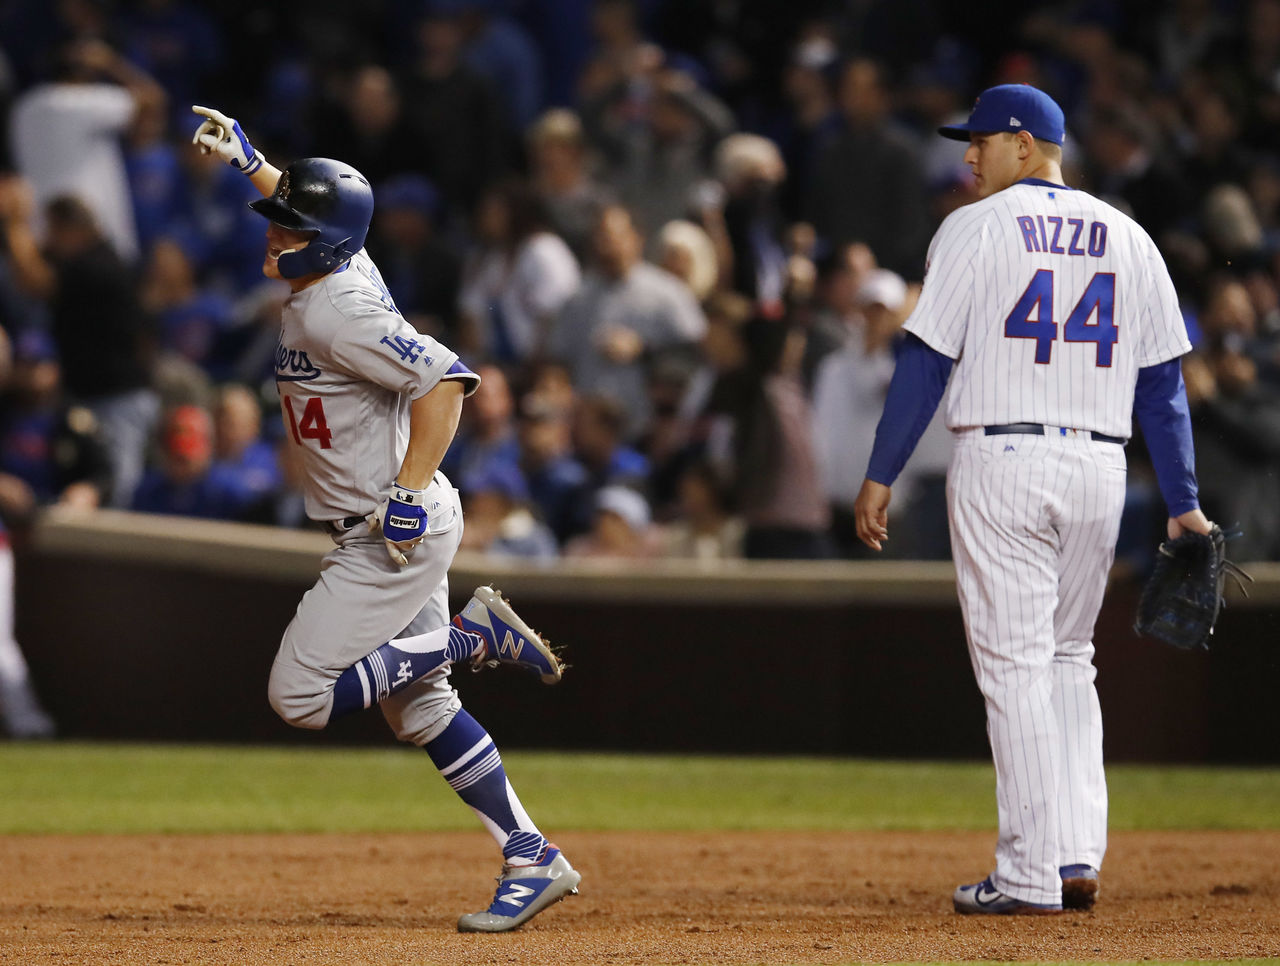 Cropped 2017 10 20t011613z 1760862493 nocid rtrmadp 3 mlb nlcs los angeles dodgers at chicago cubs